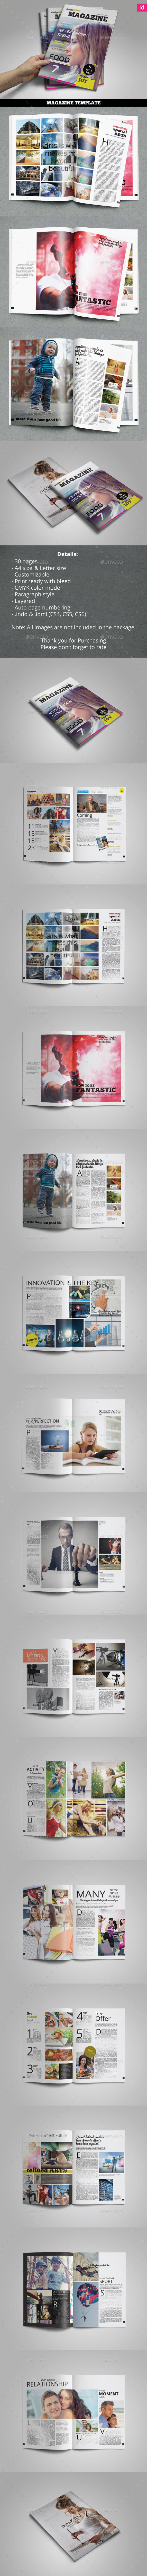 GraphicRiver Semi Clean Magazine Template 11550661